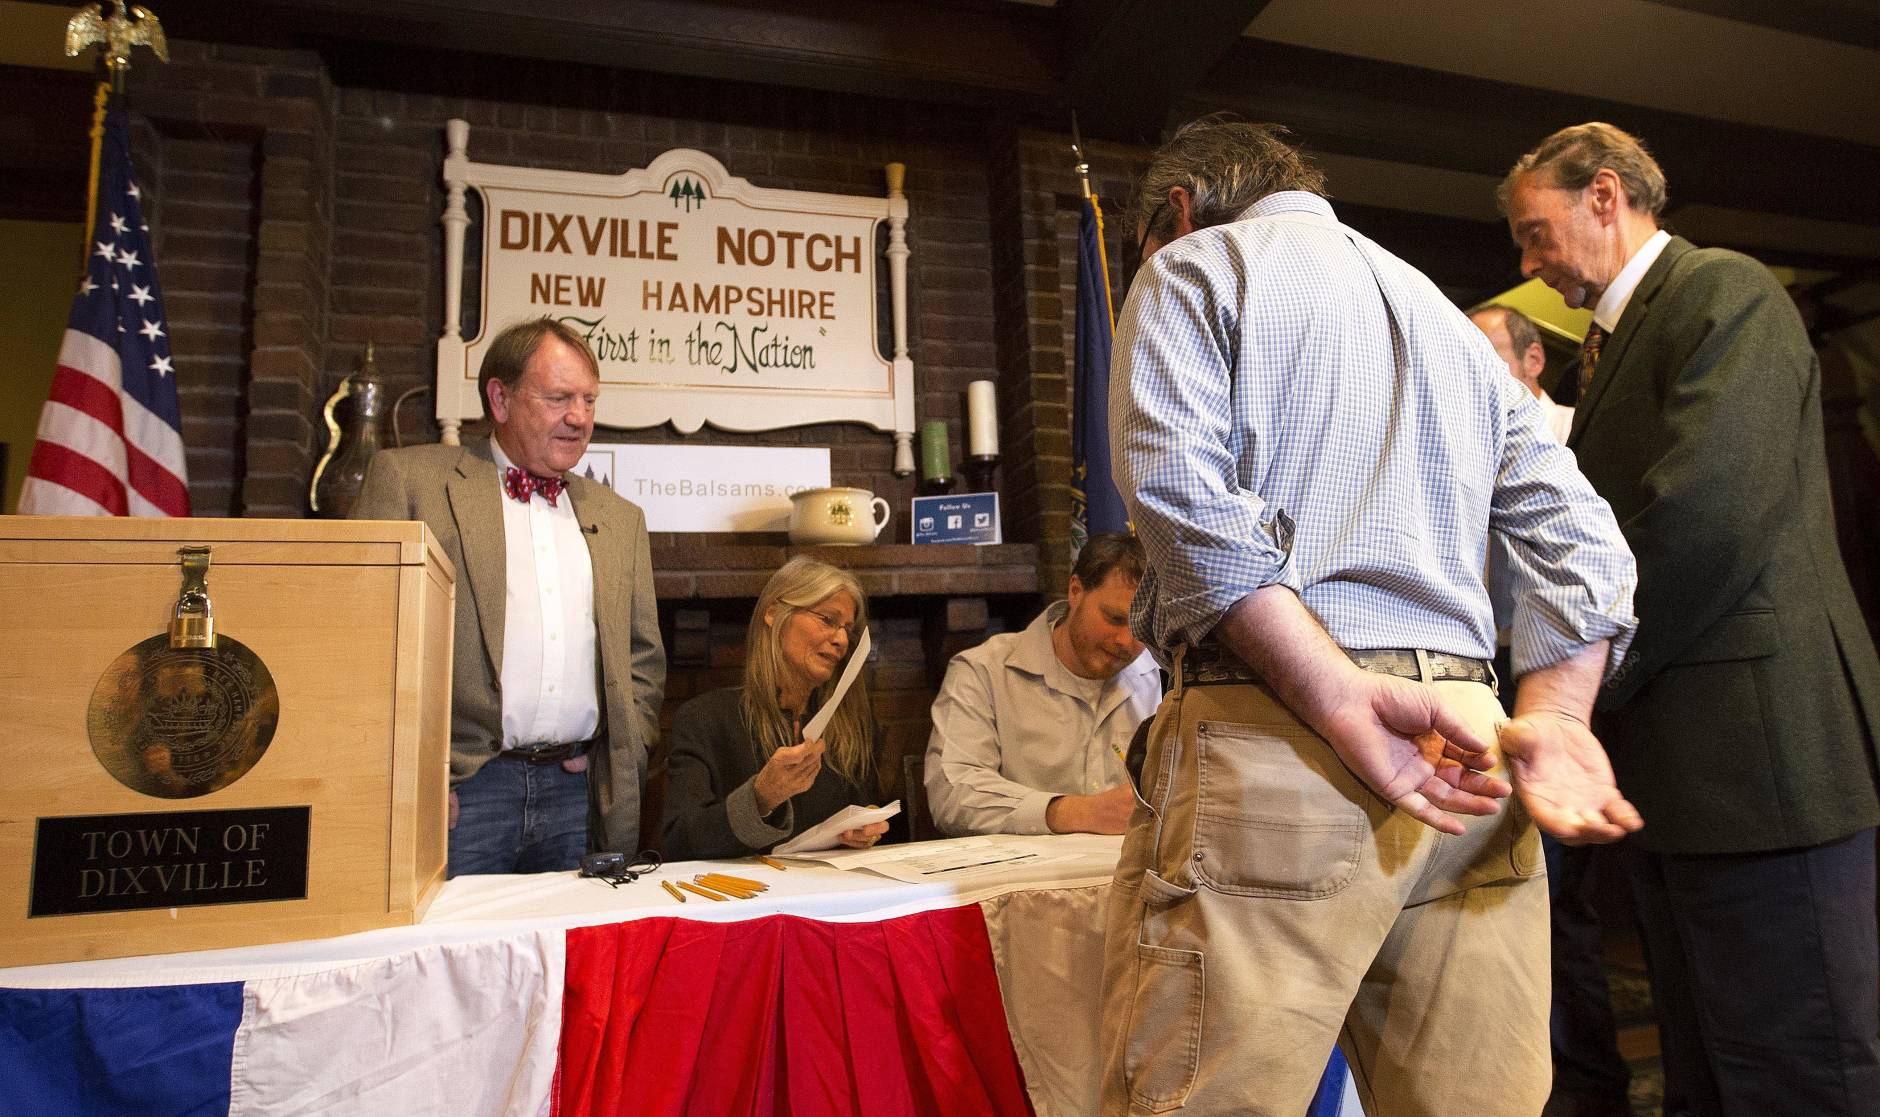 Voters in Dixville Notch, N.H., get their ballots Tuesday, Nov. 8, 2016, in Dixville Notch, N.H. The residents in town voted just after midnight. (AP Photo/Jim Cole)